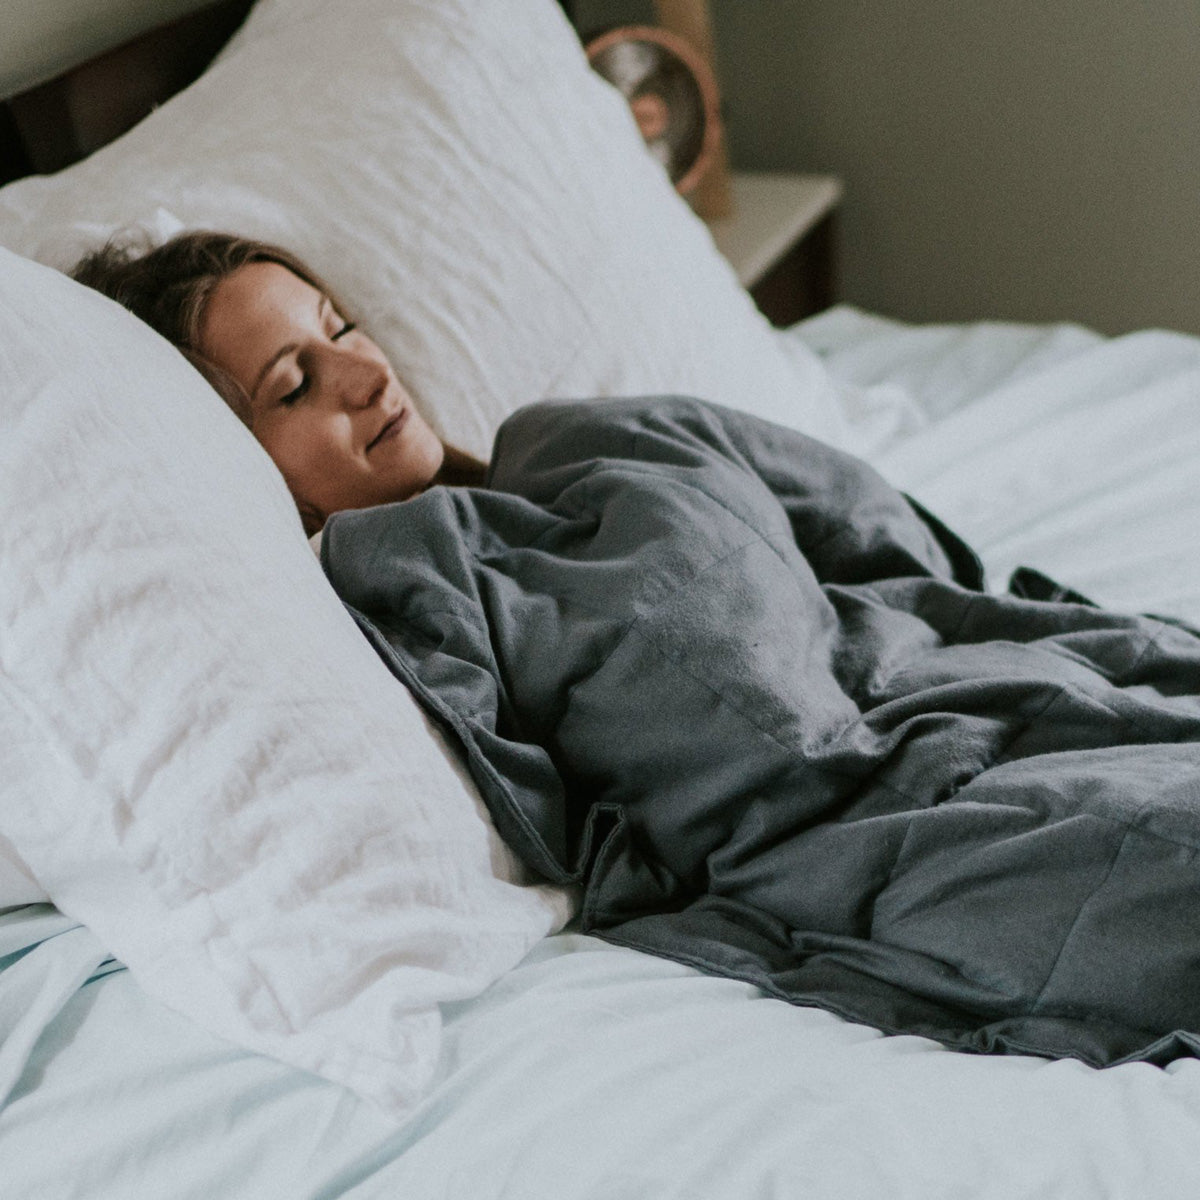 Anxiety Relieving Weighted Blankets For Adults